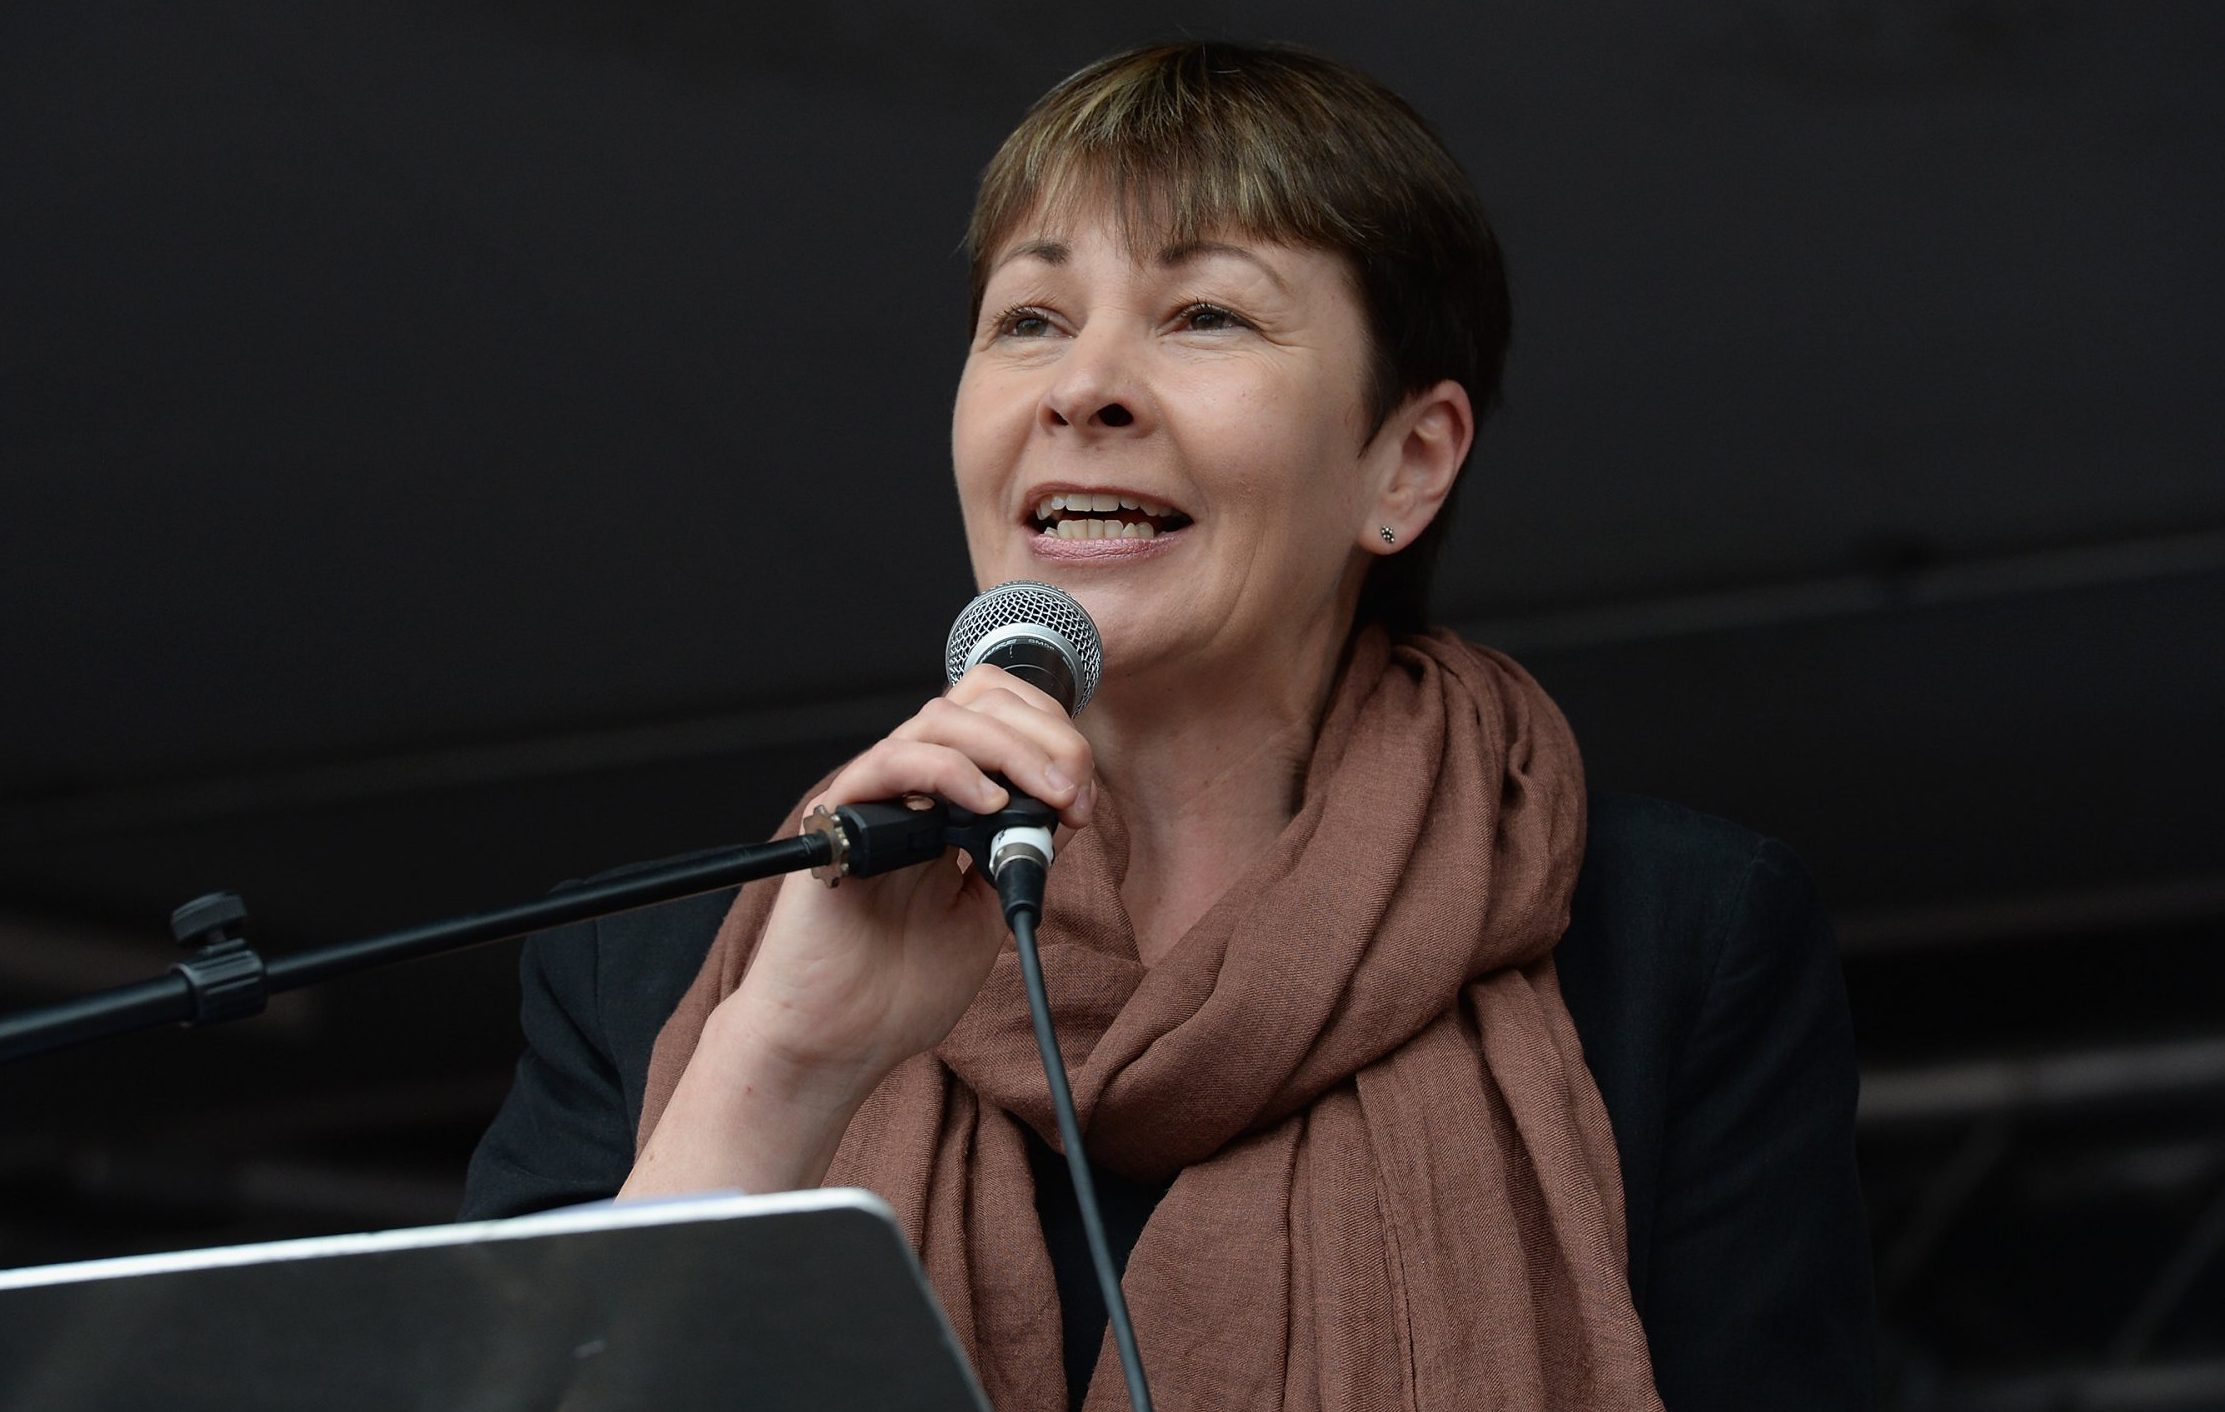 LONDON, ENGLAND - JUNE 20: Green Party MP for Birghton and Hove, Caroline Lucas, speaks to thousands of demonstrators gathered in Parliament Square to protest against austerity and spending cuts on June 20, 2015 in London, England. Thousands of people gathered to march from the City of London to Westminster, where they listened to addresses from singer Charlotte Church and comedian Russell Brand as well as Len McCluskey, general secretary of Unite and Sinn Fein's Martin McGuinness. (Photo by Mary Turner/Getty Images)